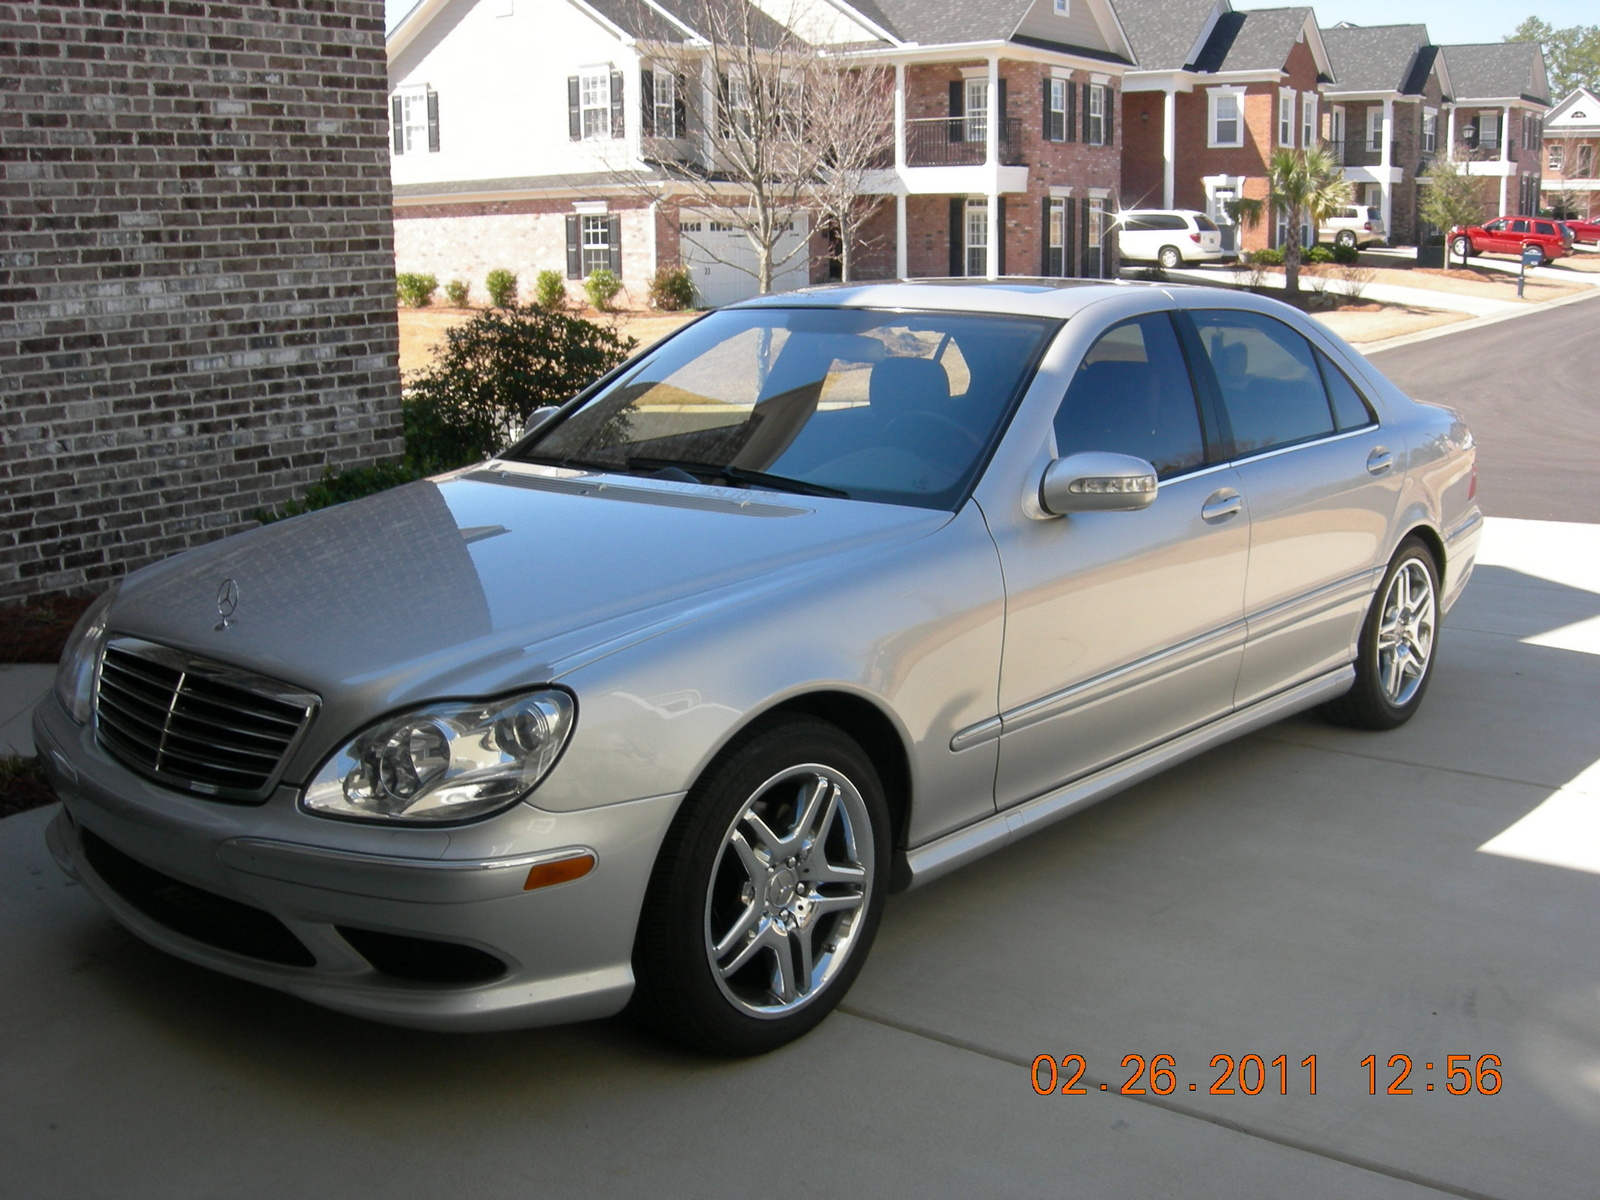 2006 mercedes benz s class pictures cargurus for Mercedes benz s500